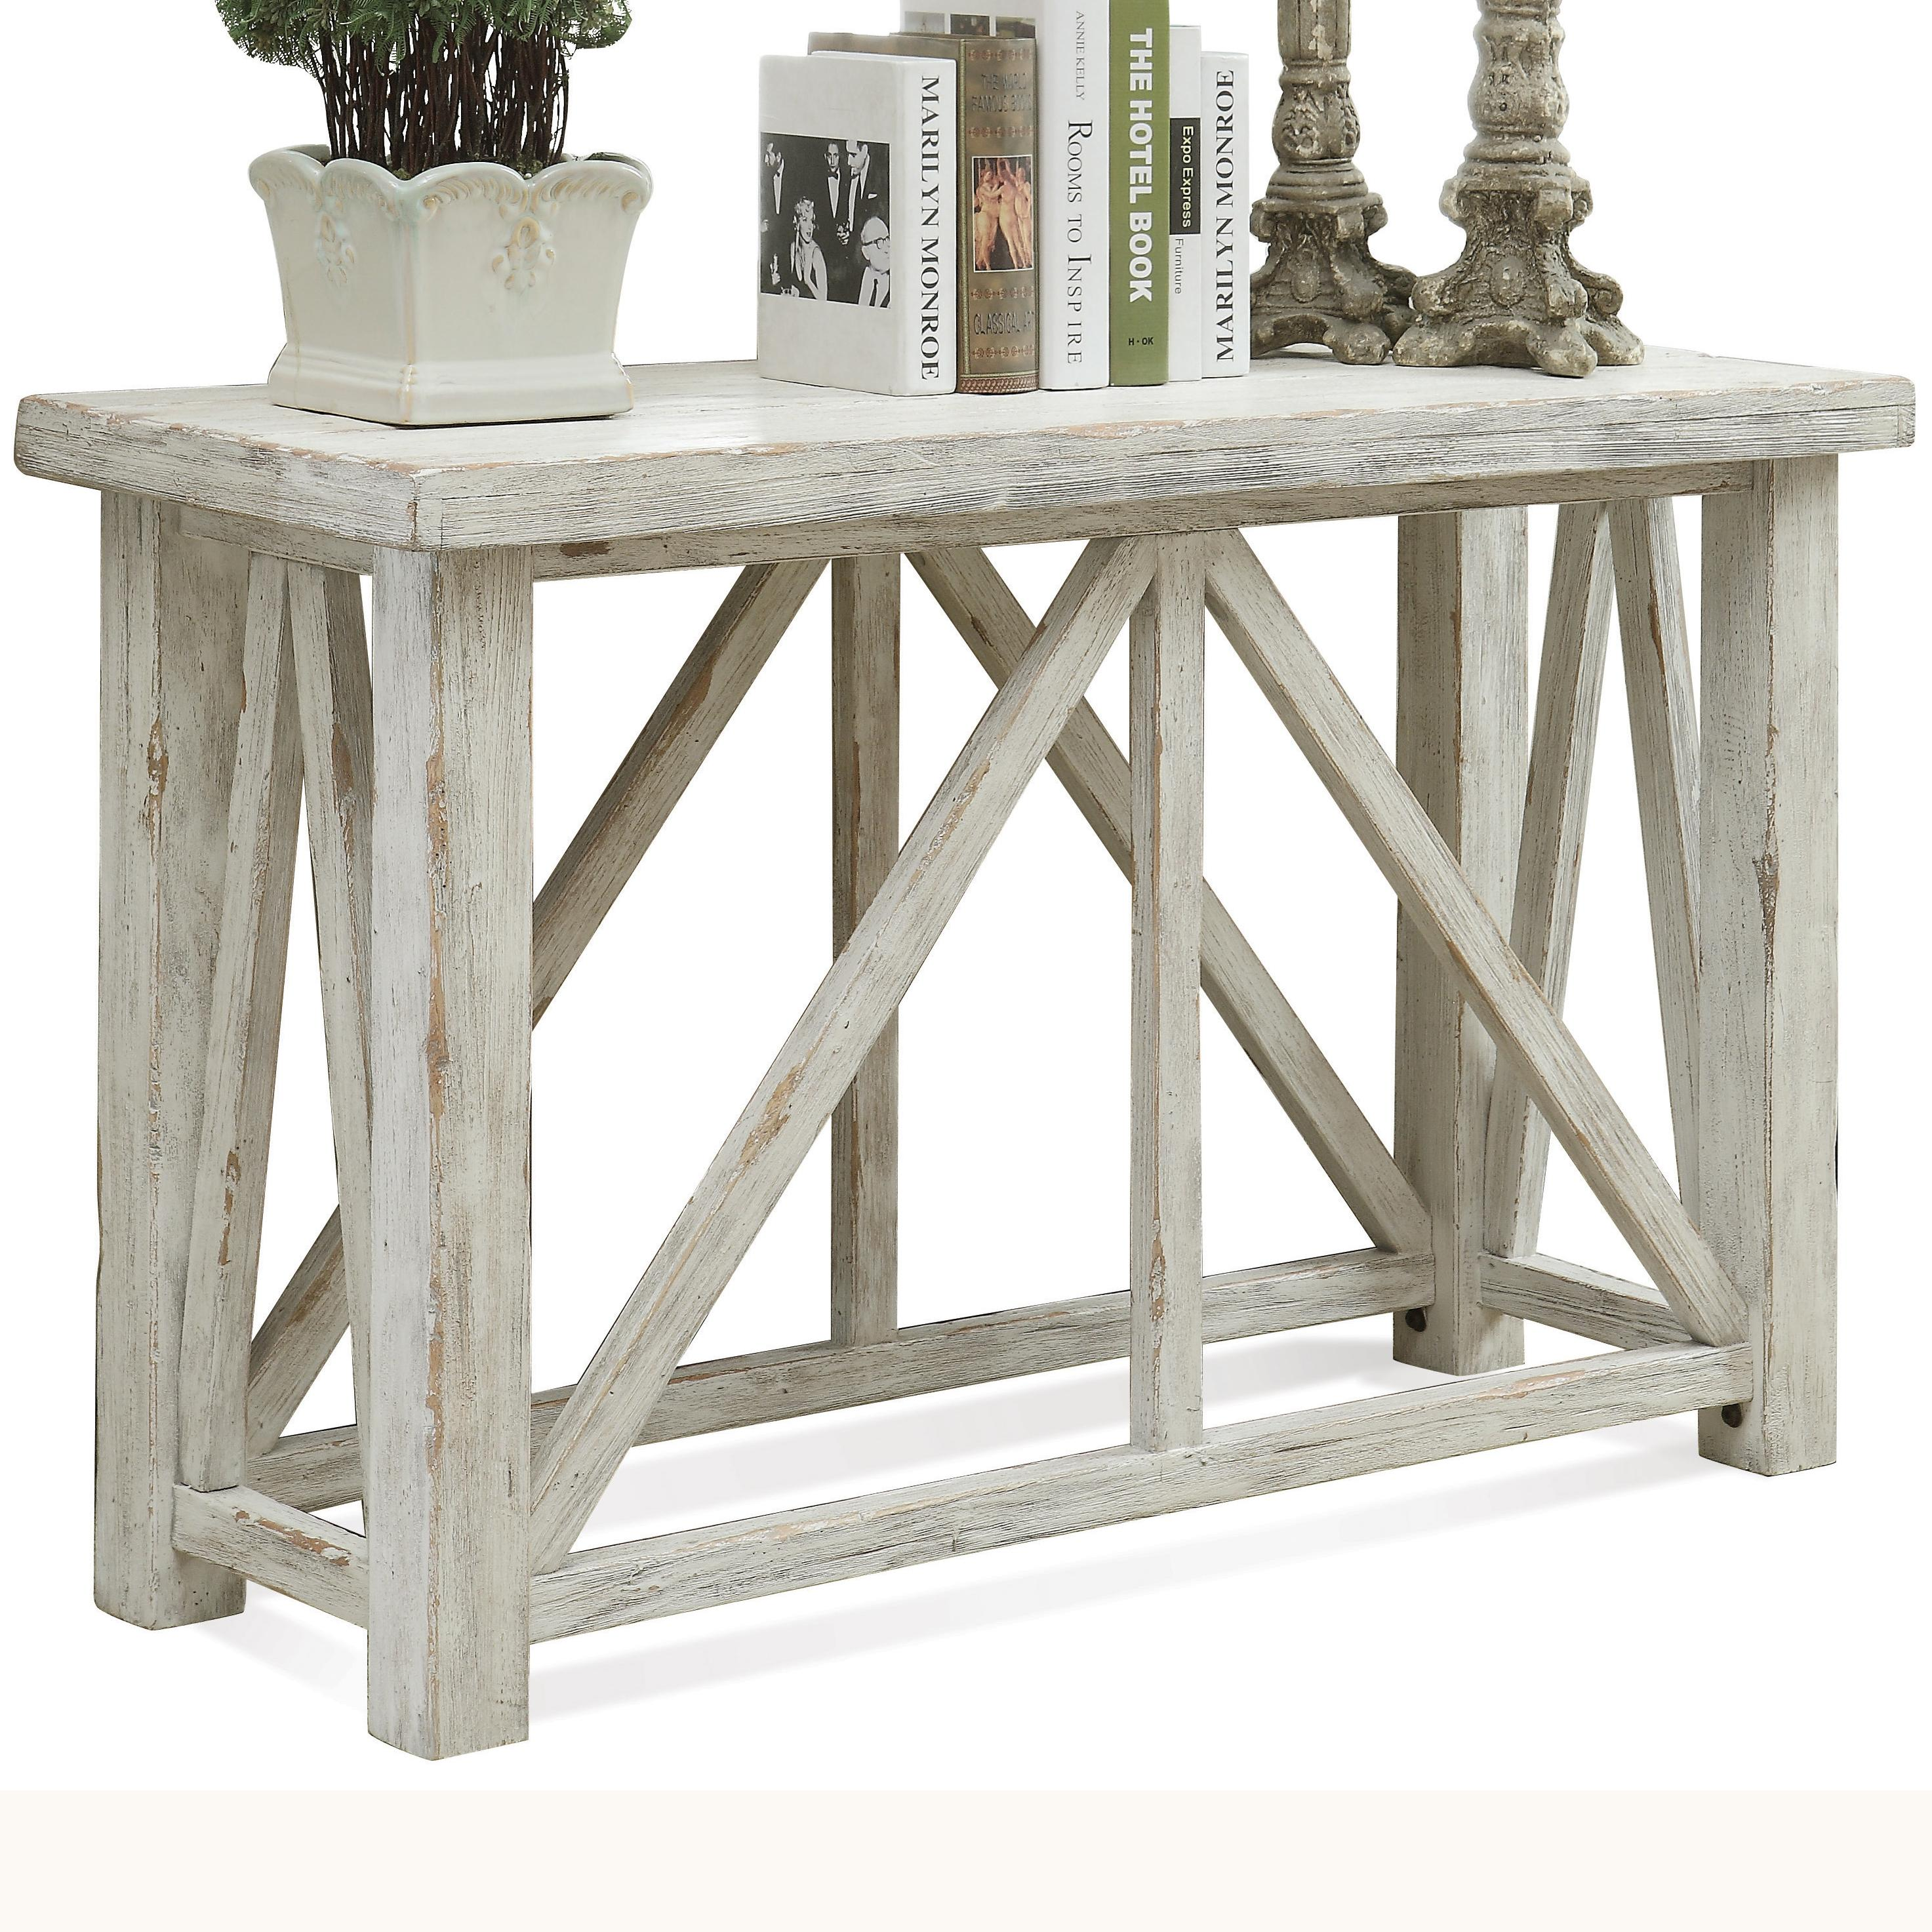 Aberdeen Sofa Table by Riverside Furniture at Esprit Decor Home Furnishings